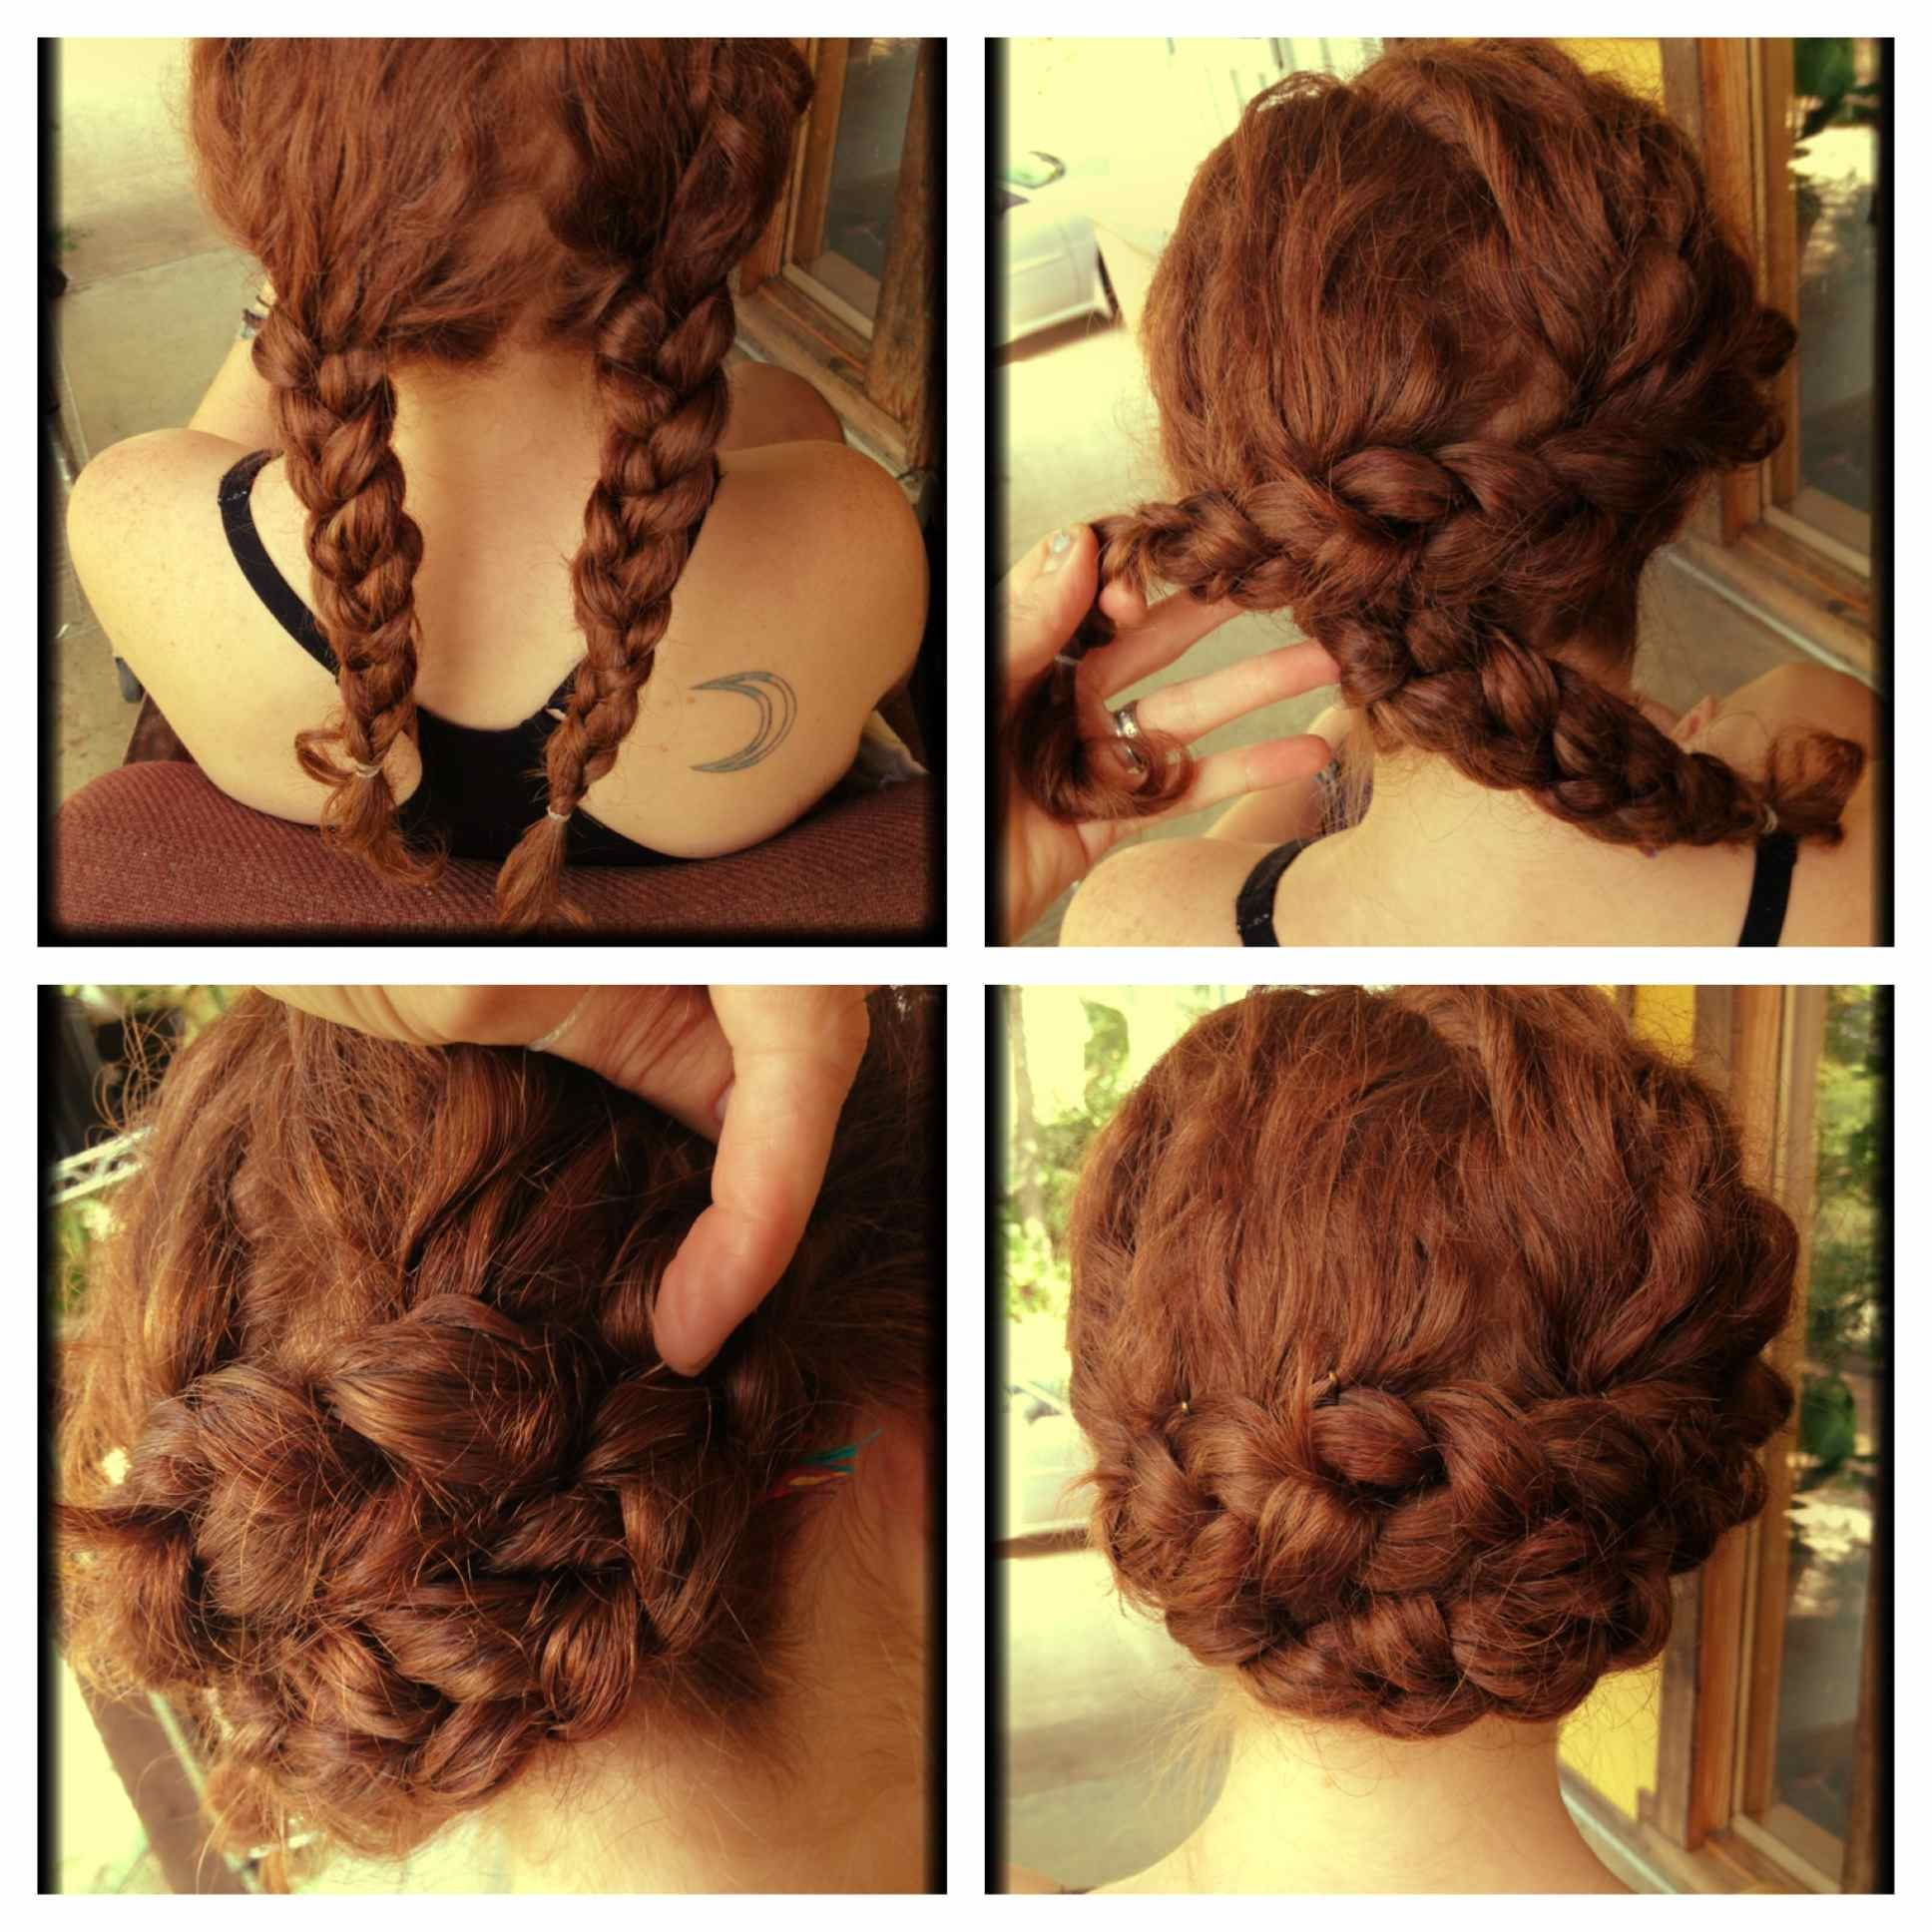 Roxiejanehunt 4 Lovely Up Dos For Curly Hair Curly Hair Styles Thick Hair Styles Curly Hair Updo